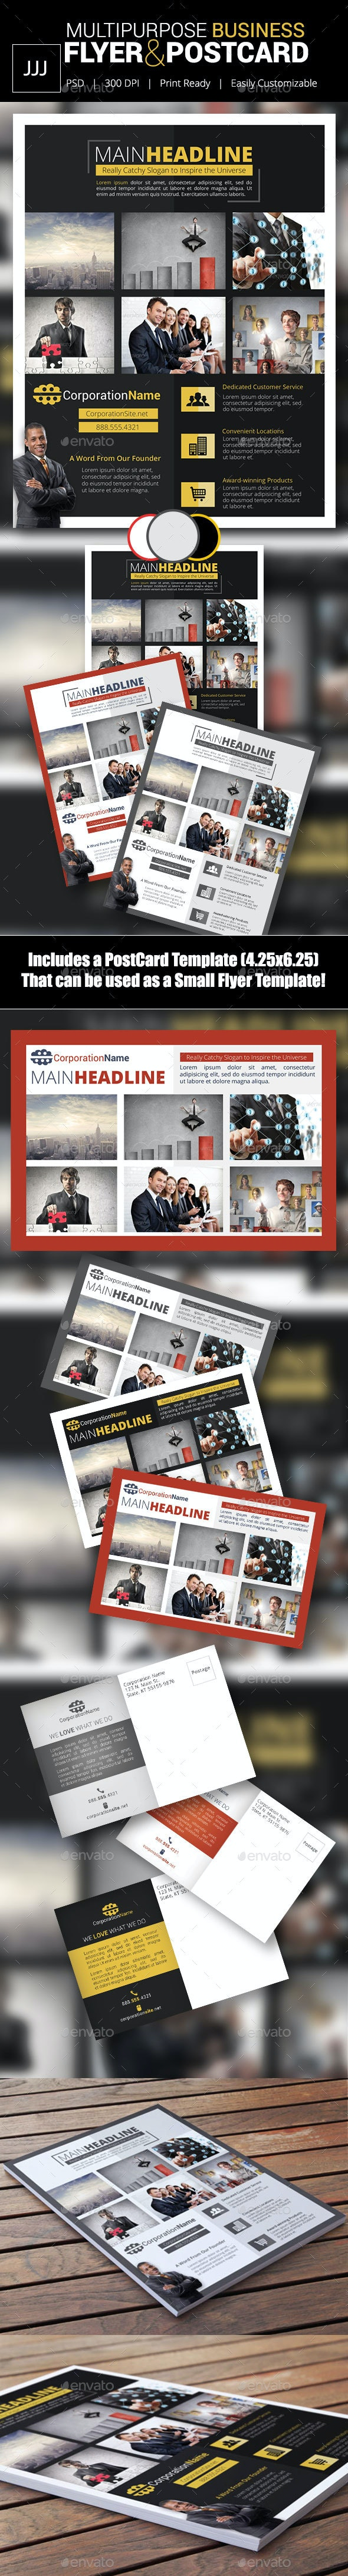 Business Flyer 41 with Postcard - Corporate Flyers